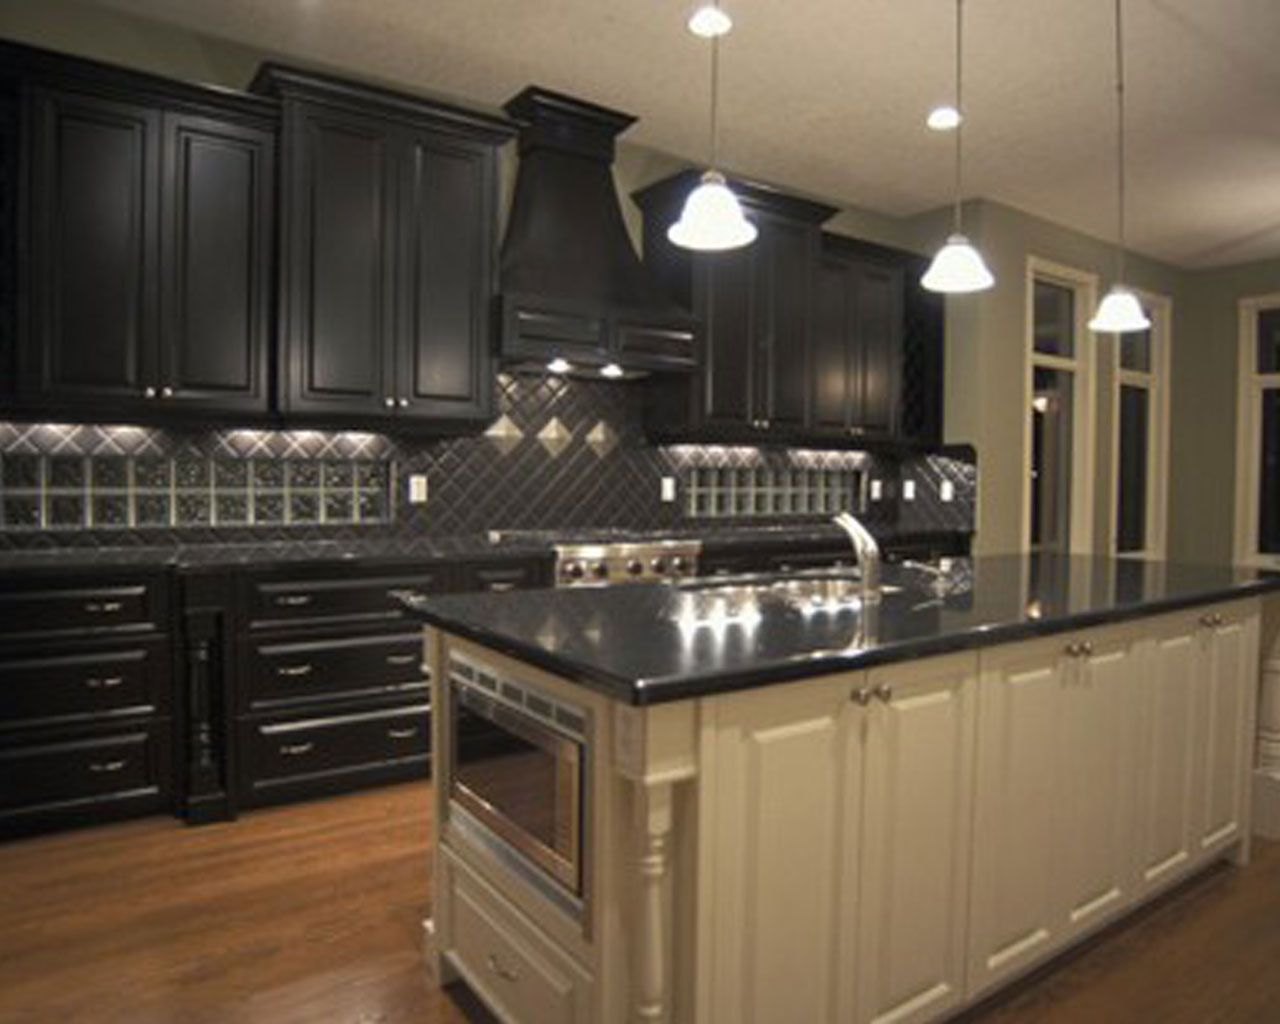 Finest design black kitchen cabinets wallpapers new for Dark paint colors for kitchen